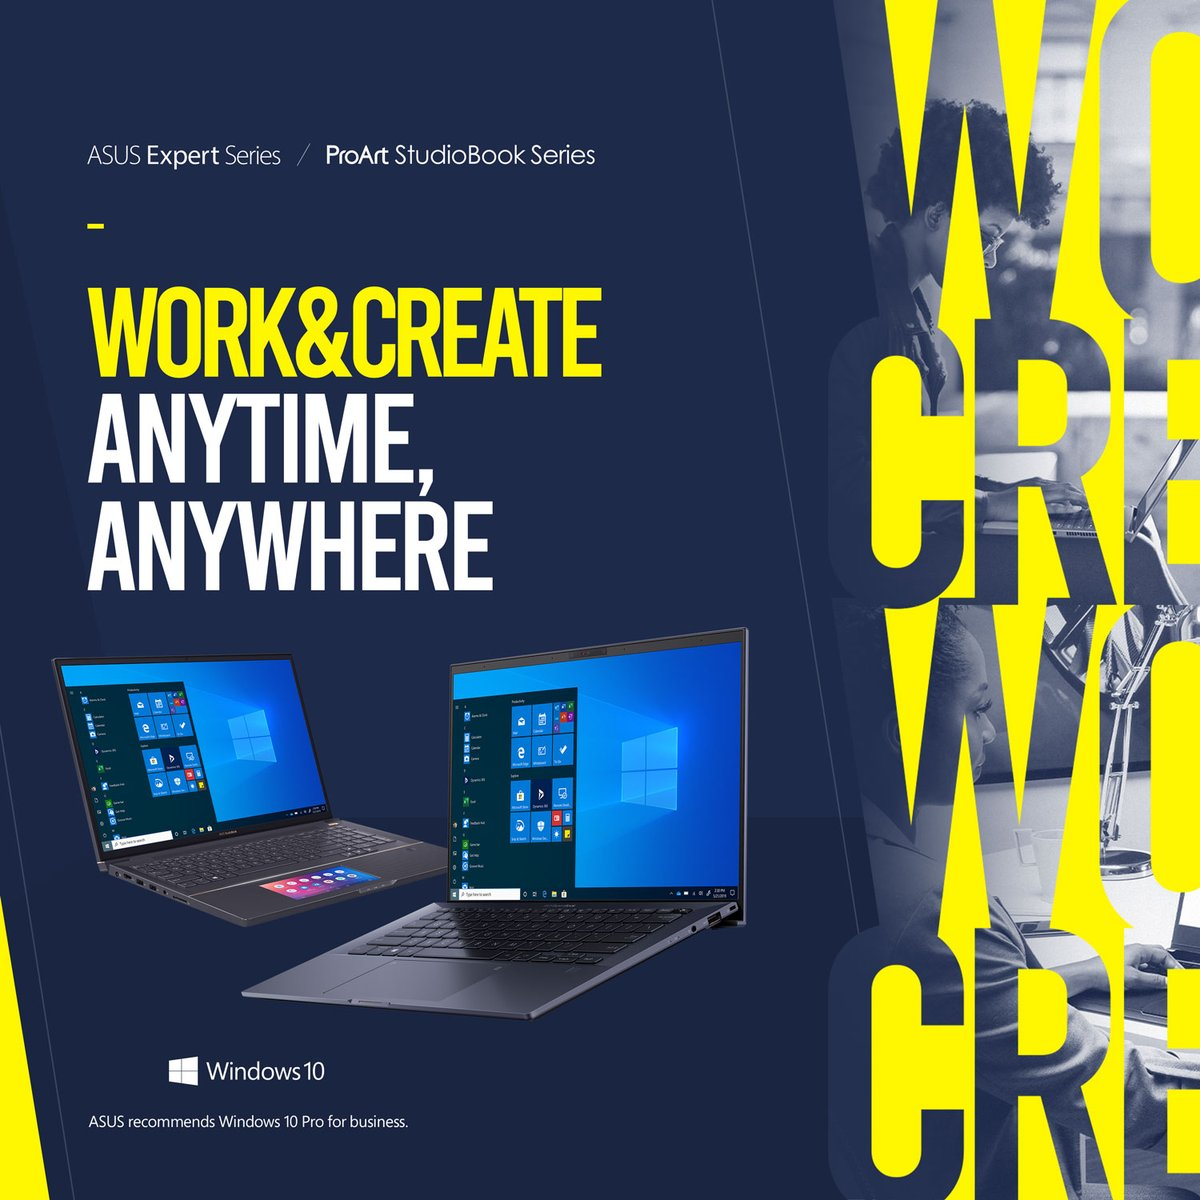 """Work & create anytime, anywhere with the world's lightest 14"""" business laptop, the ASUS ExpertBook B9, and the most powerful content-creator mobile workstations, the ASUS ProArt StudioBook Series. https://t.co/2cnbPKfpoc"""